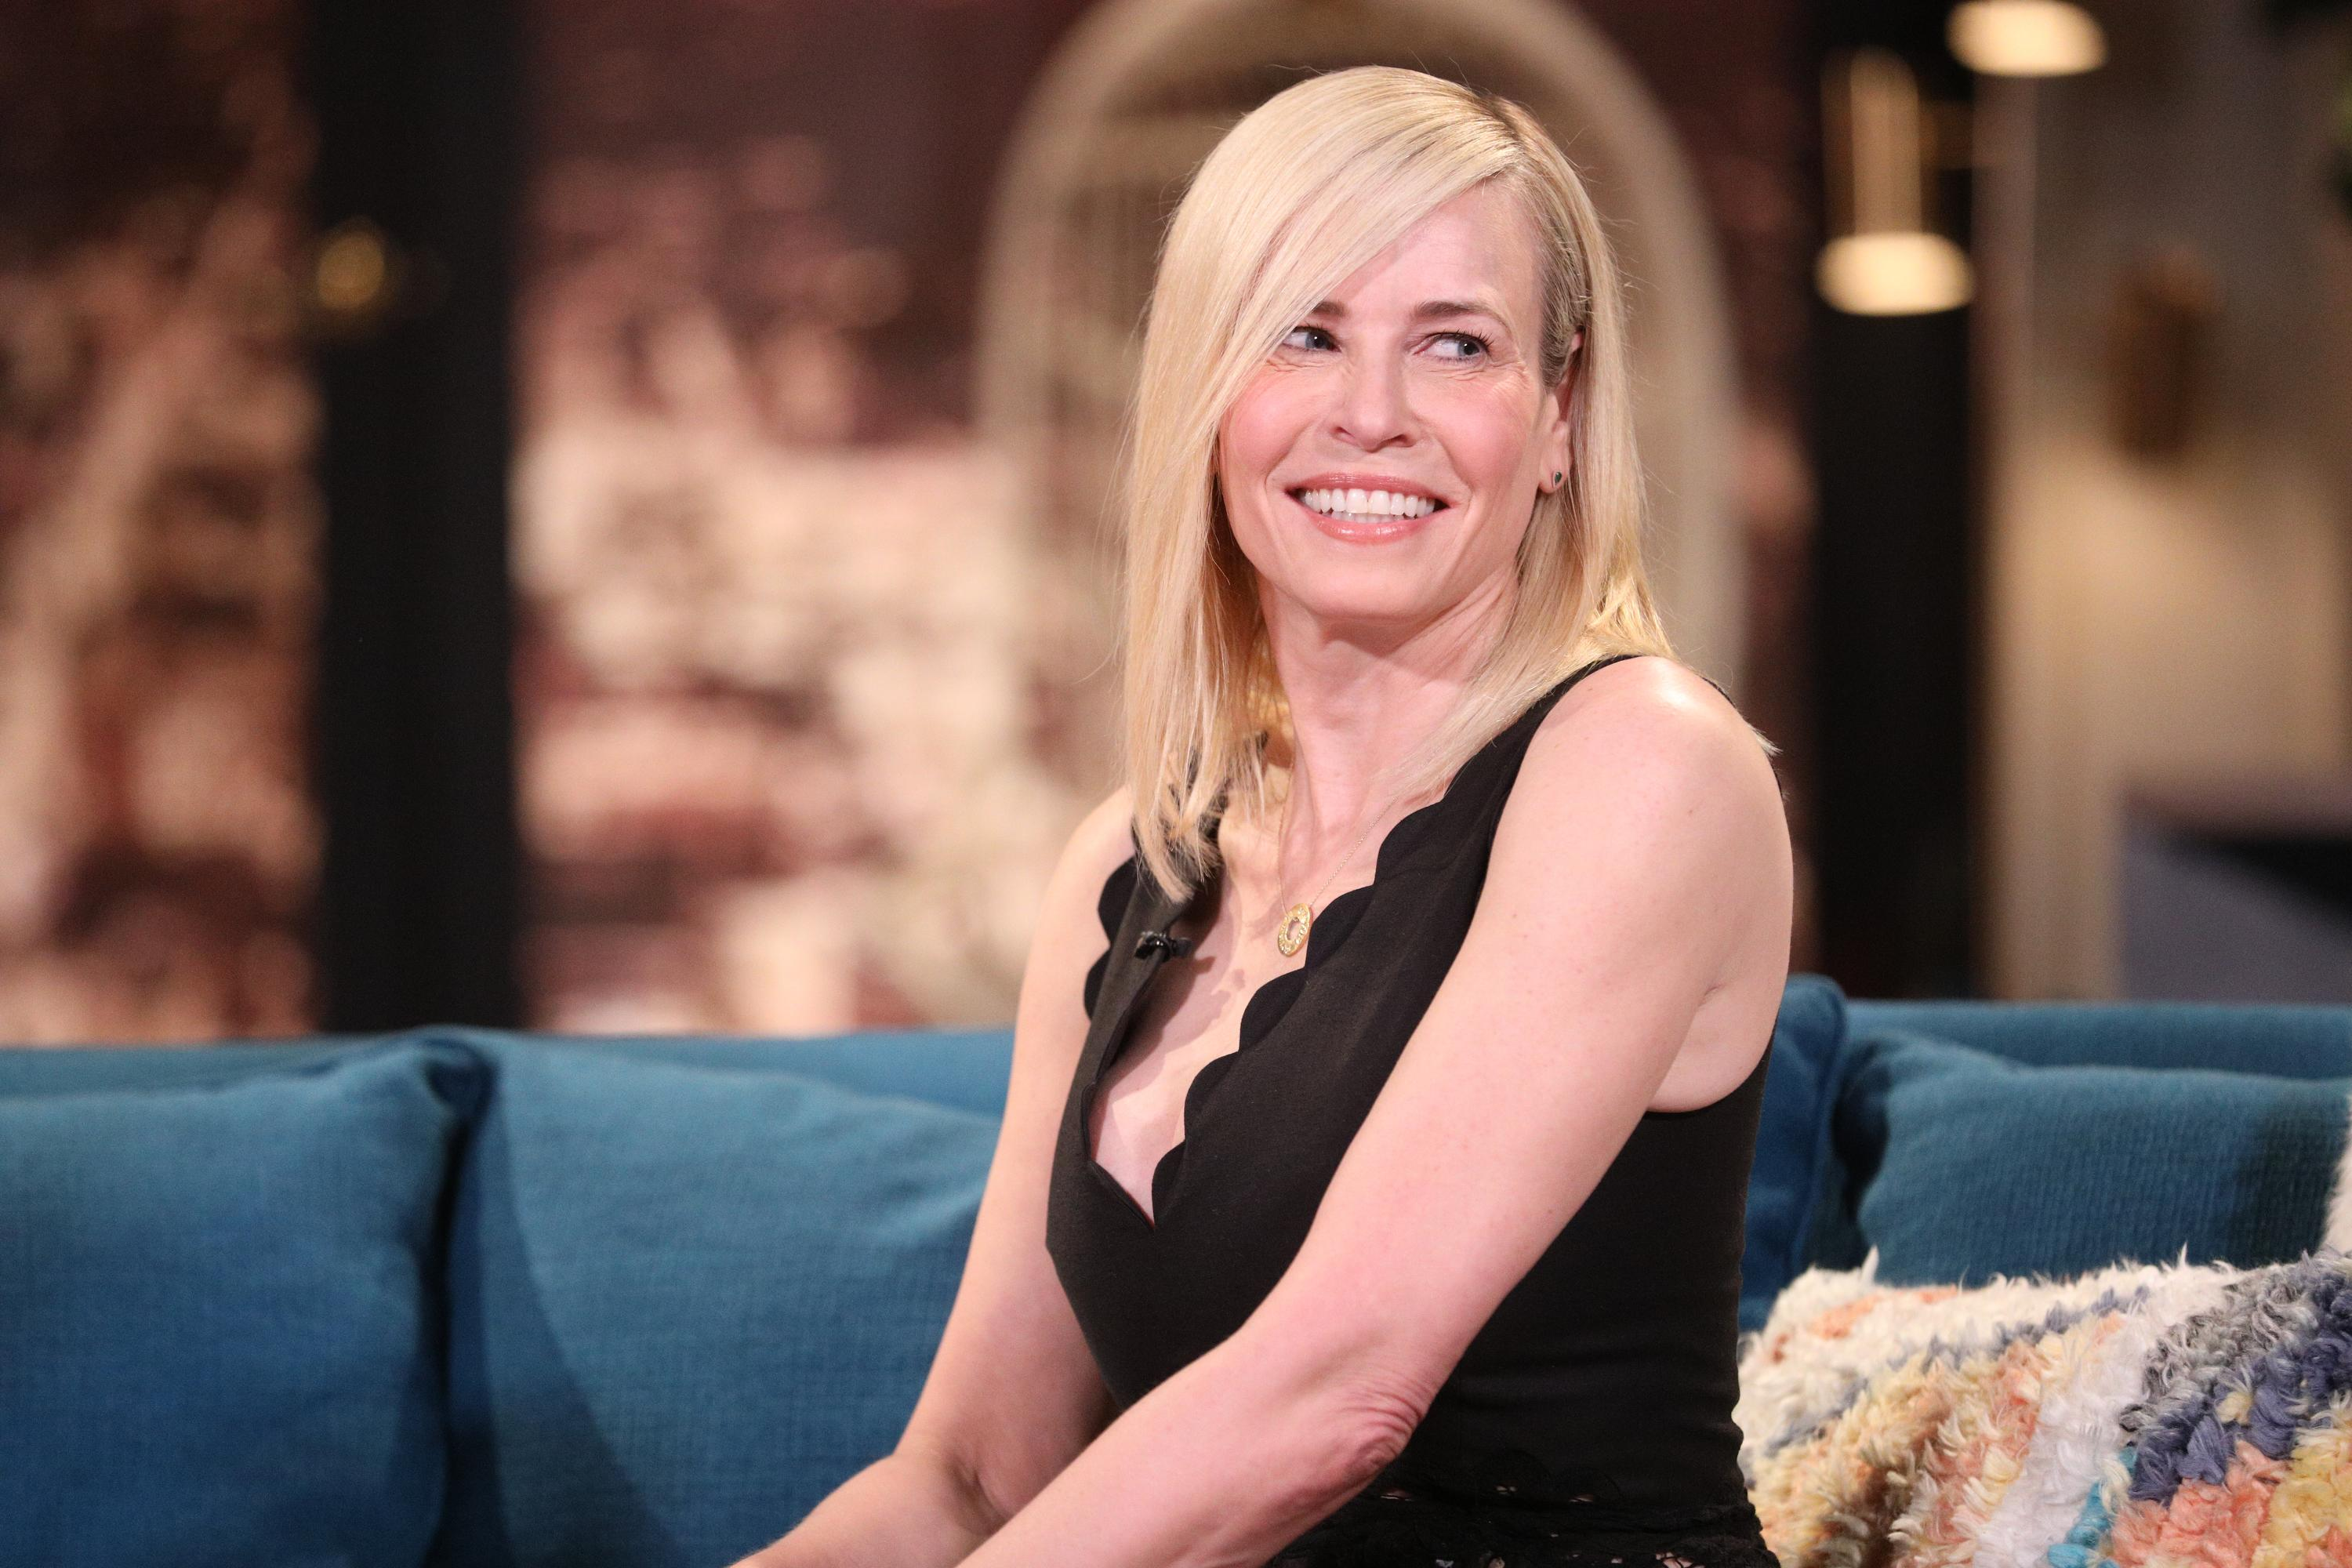 Chelsea Handler says Trump is the 'perfect example of white privilege': 'It's nauseating'